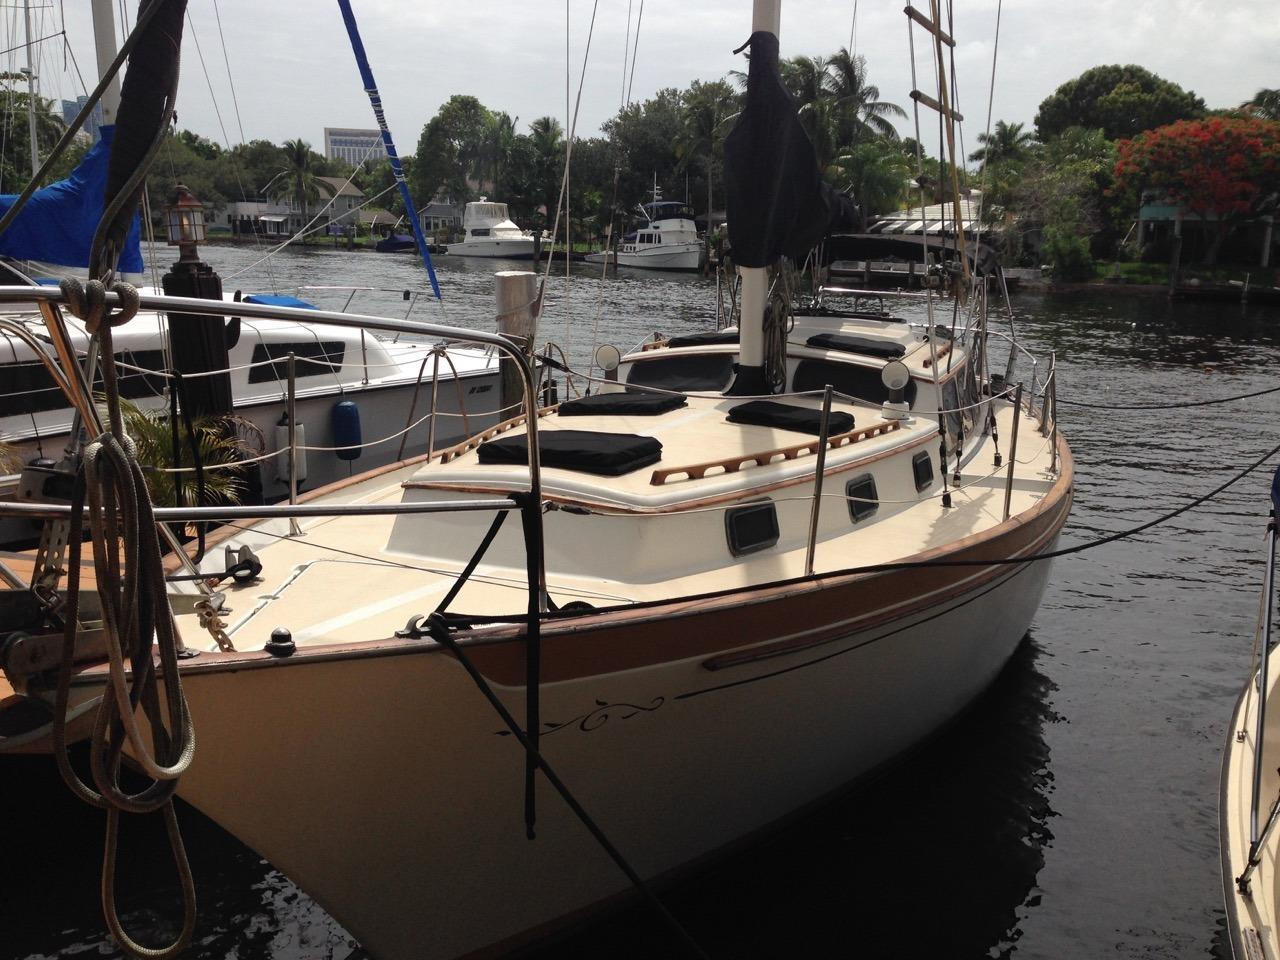 The Islander Freeport 36 Is A Safe And Fun Sailboat For The Entire Family.